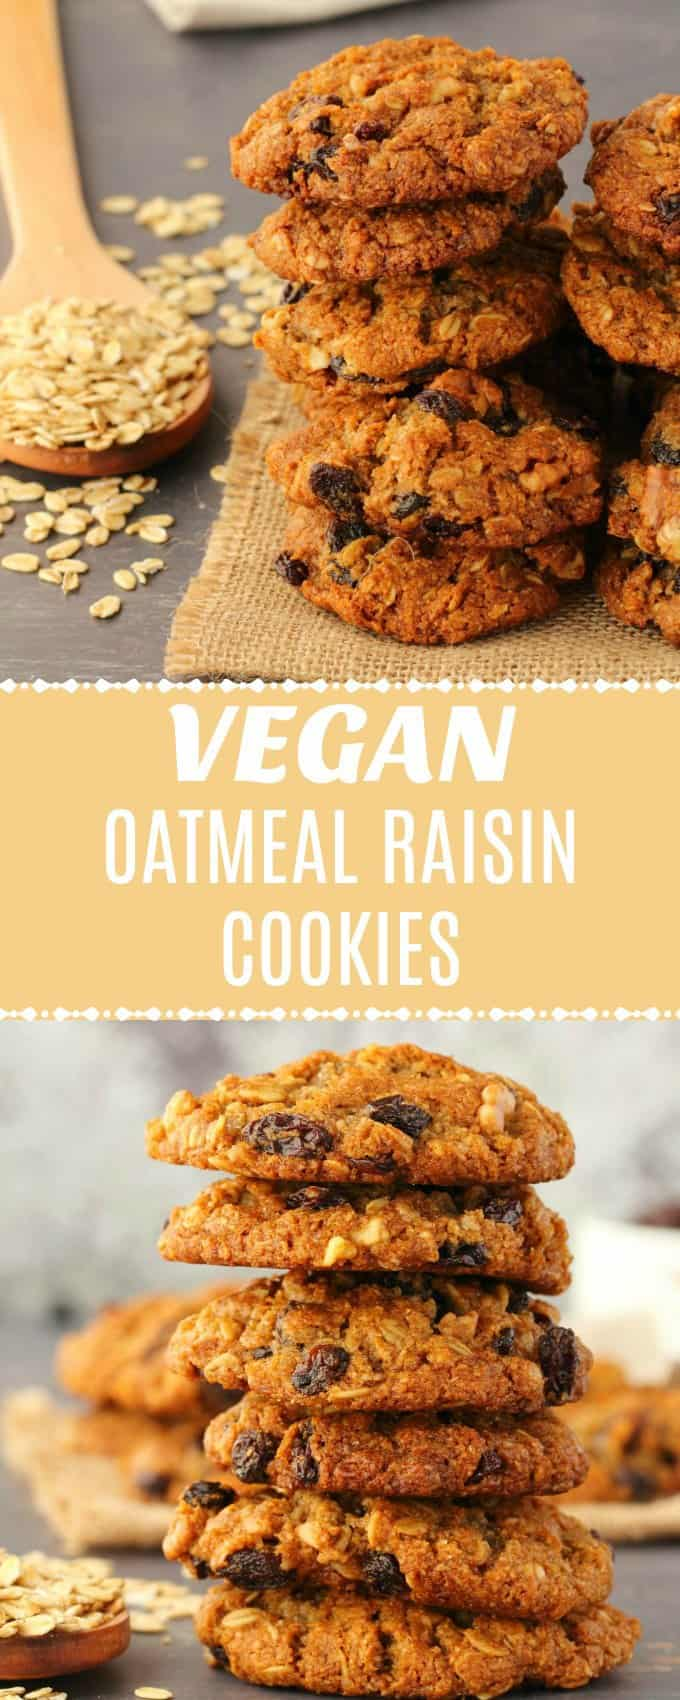 Vegan oatmeal raisin cookies that are crisp on the outside, soft and chewy on the inside, super moist and rich in flavor with a hint of molasses. Super easy recipe.   lovingitvegan.com